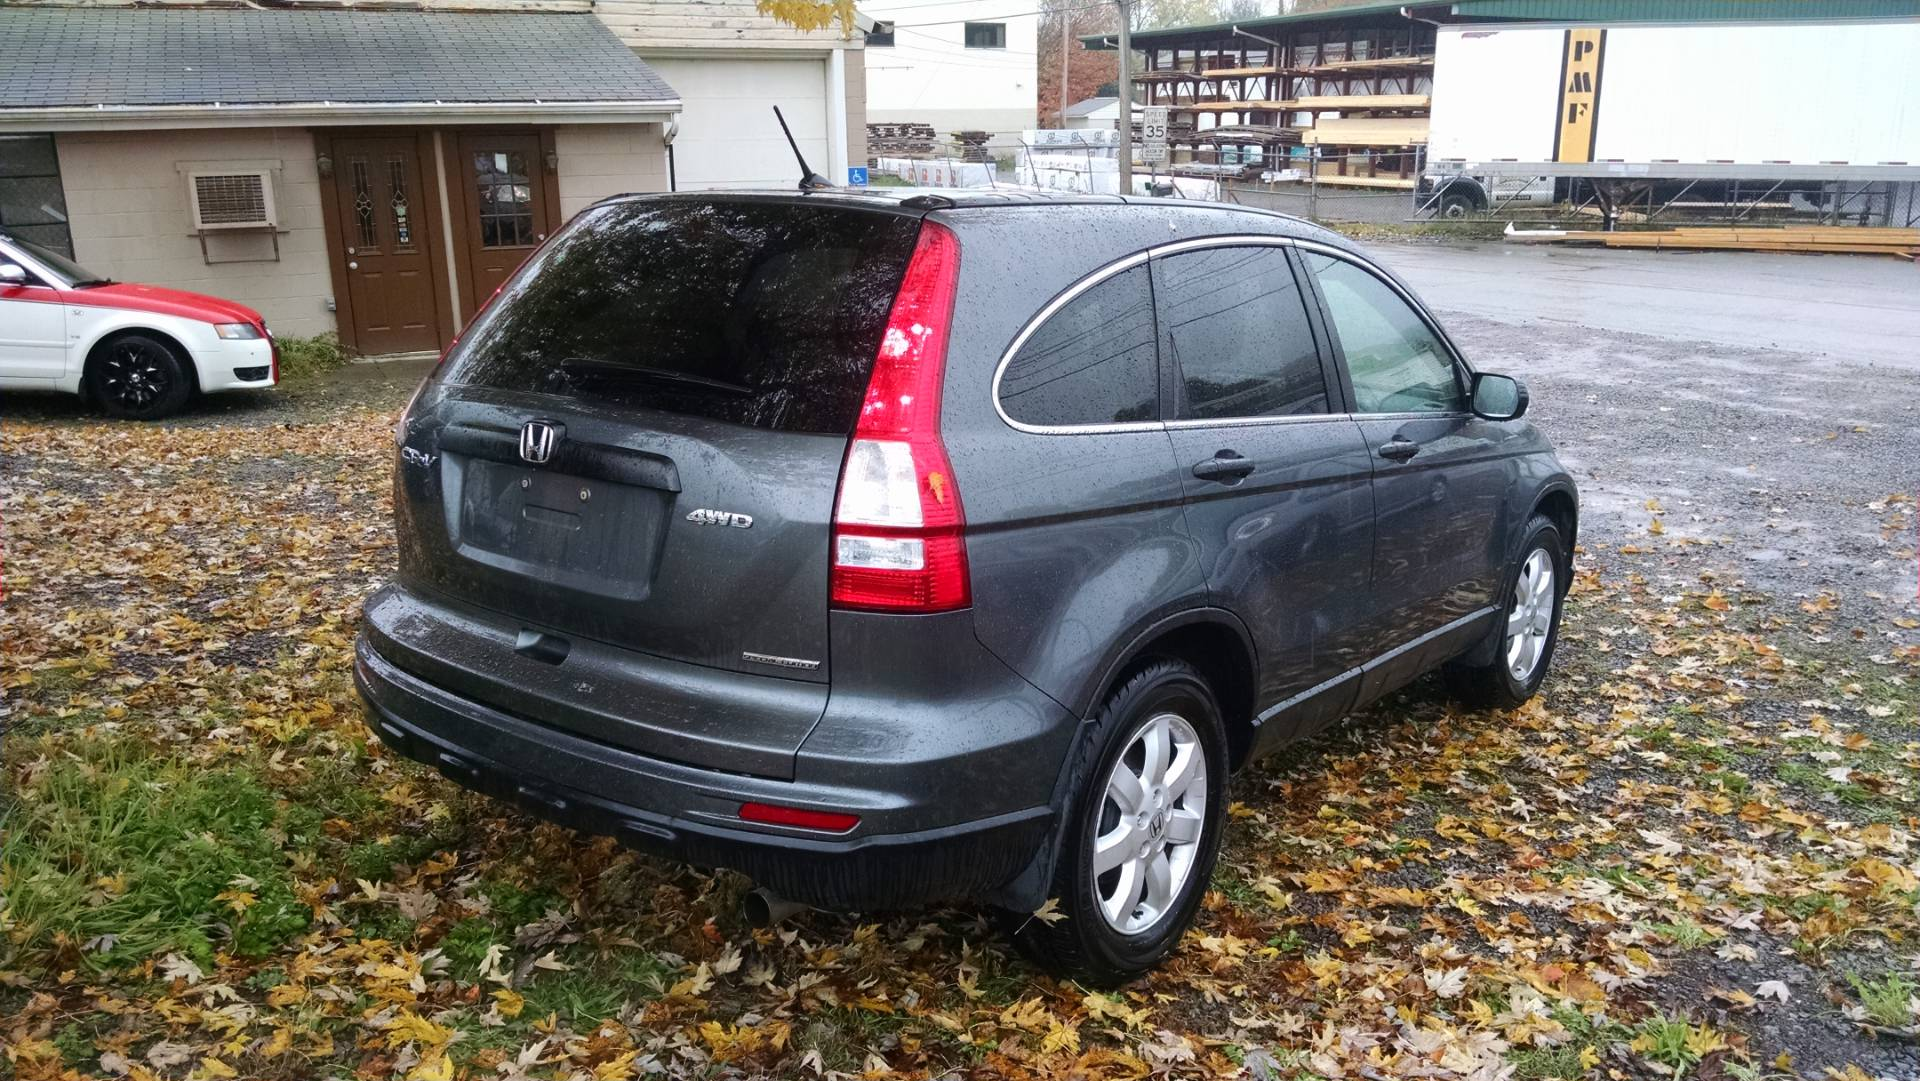 2011 Honda CRV in Harmony, Pennsylvania - Photo 3